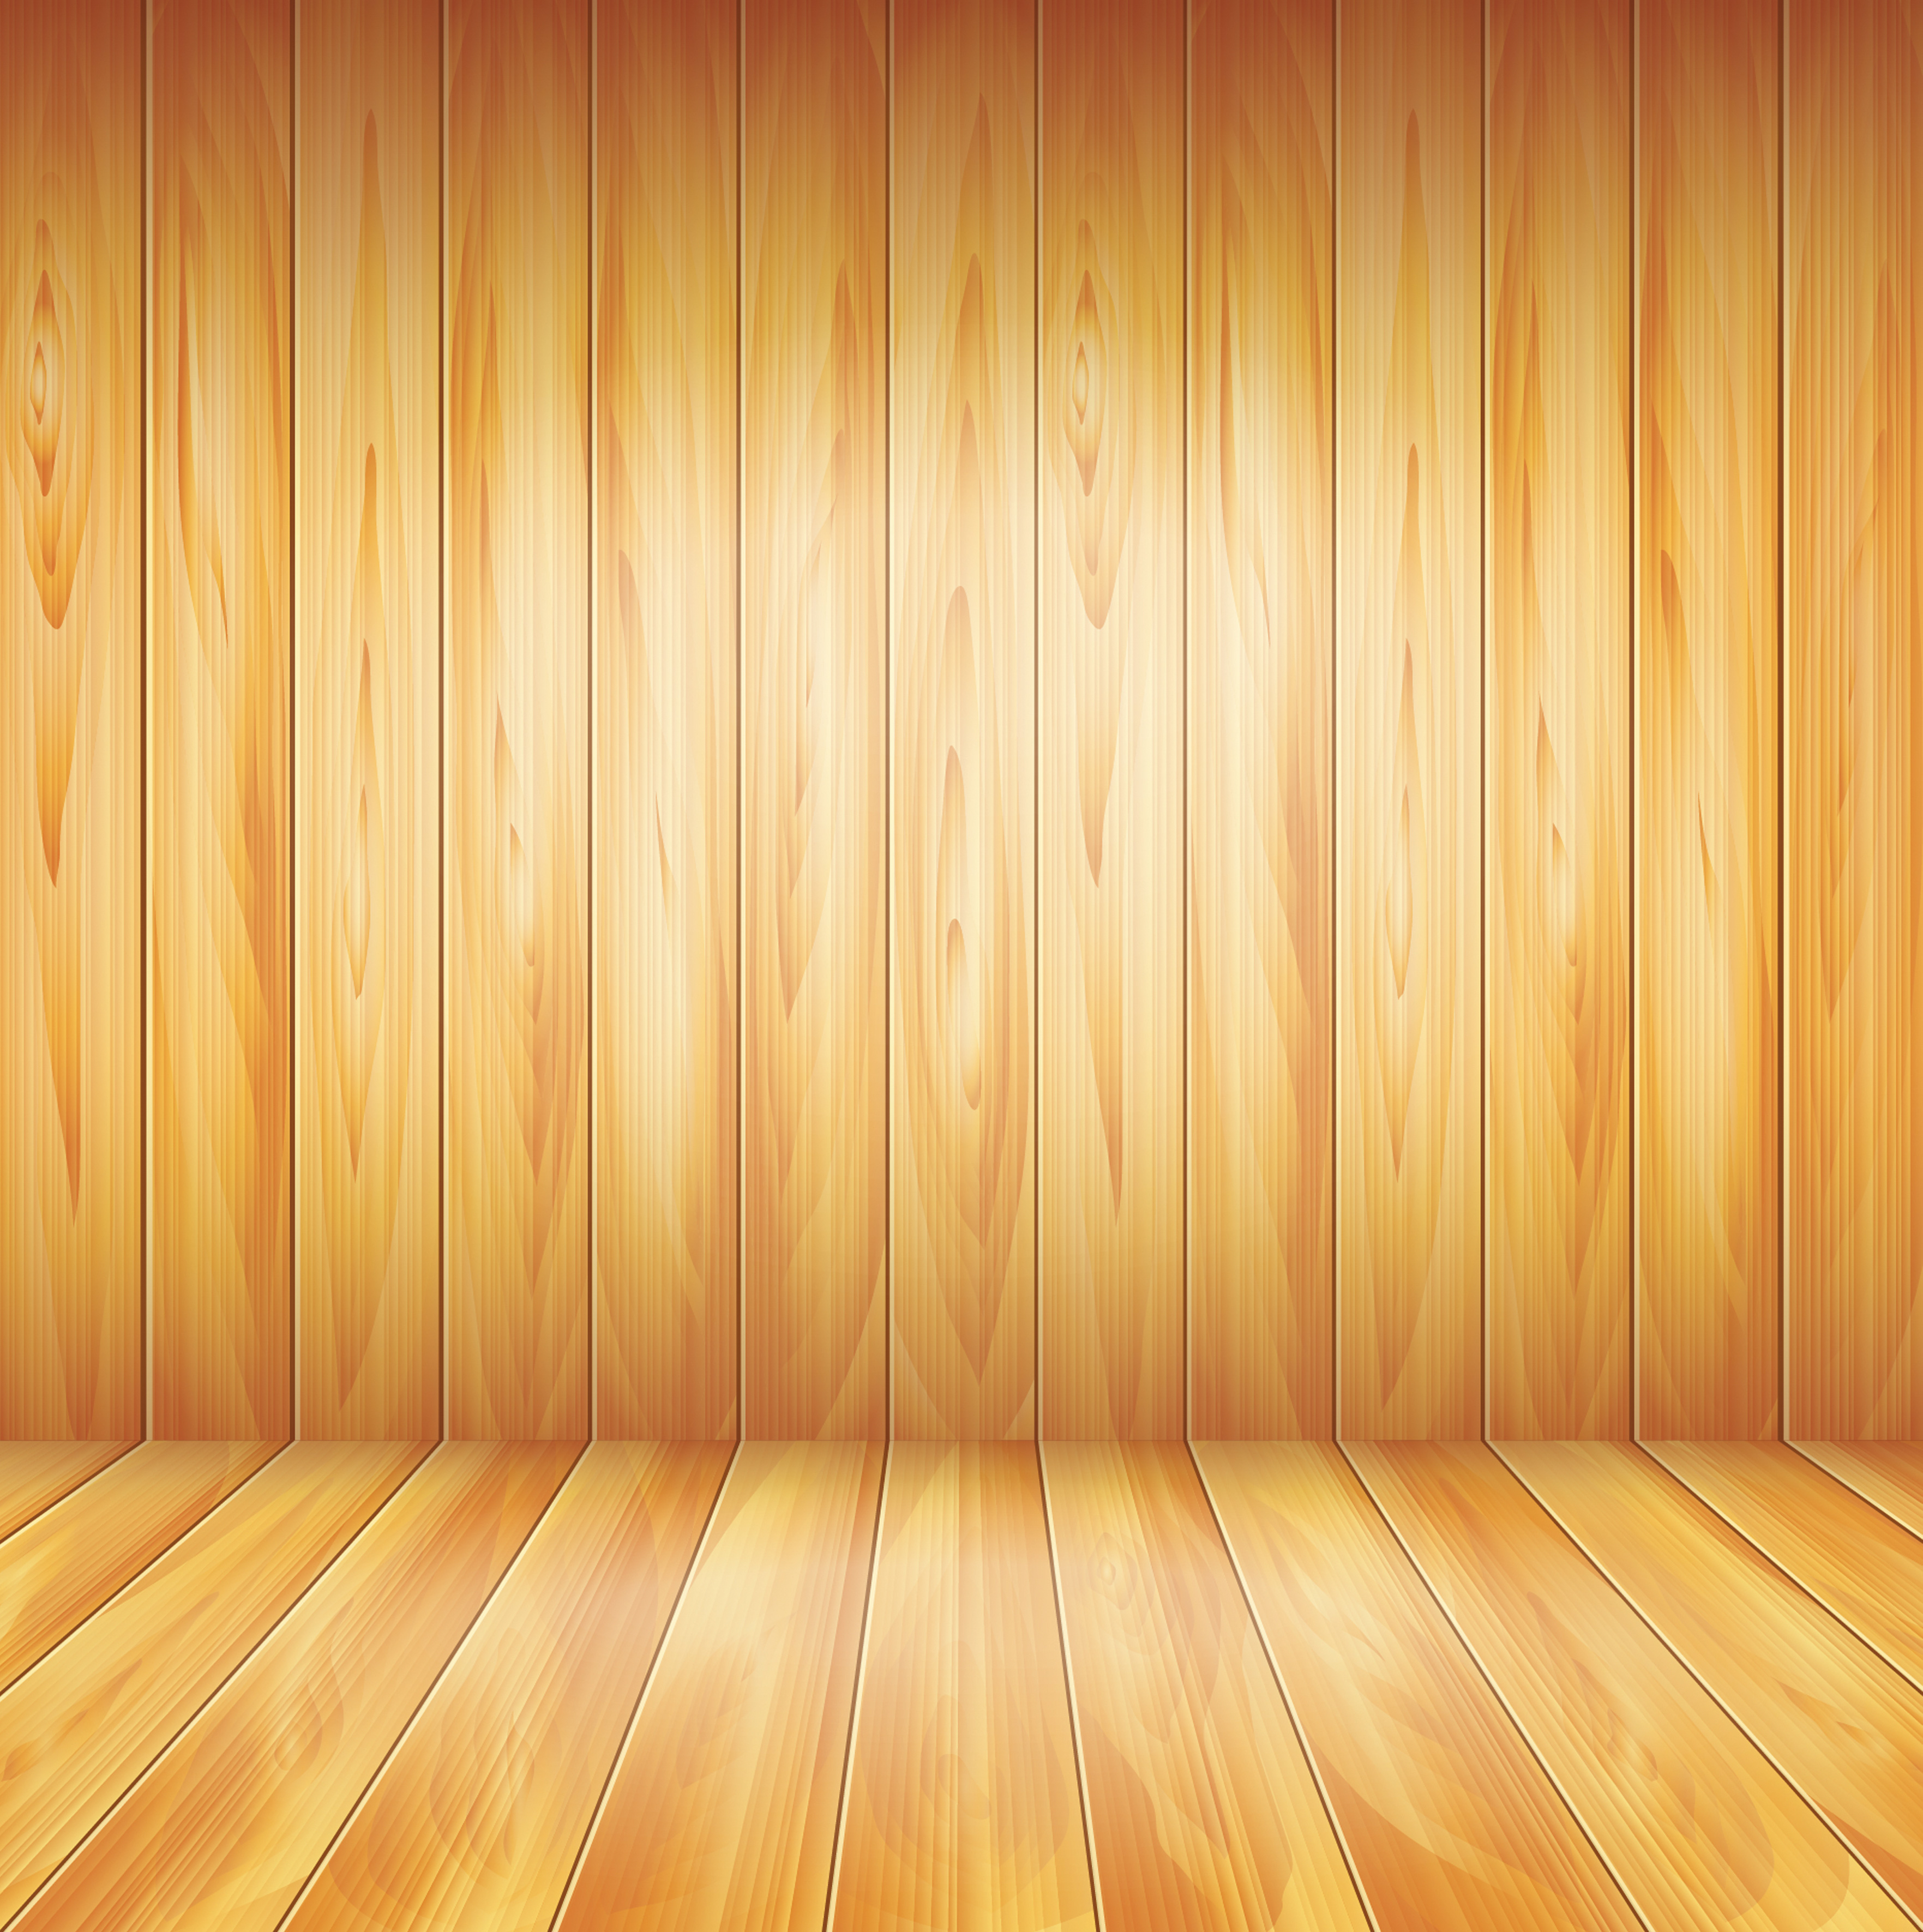 Wooden wall clipart - Clipground